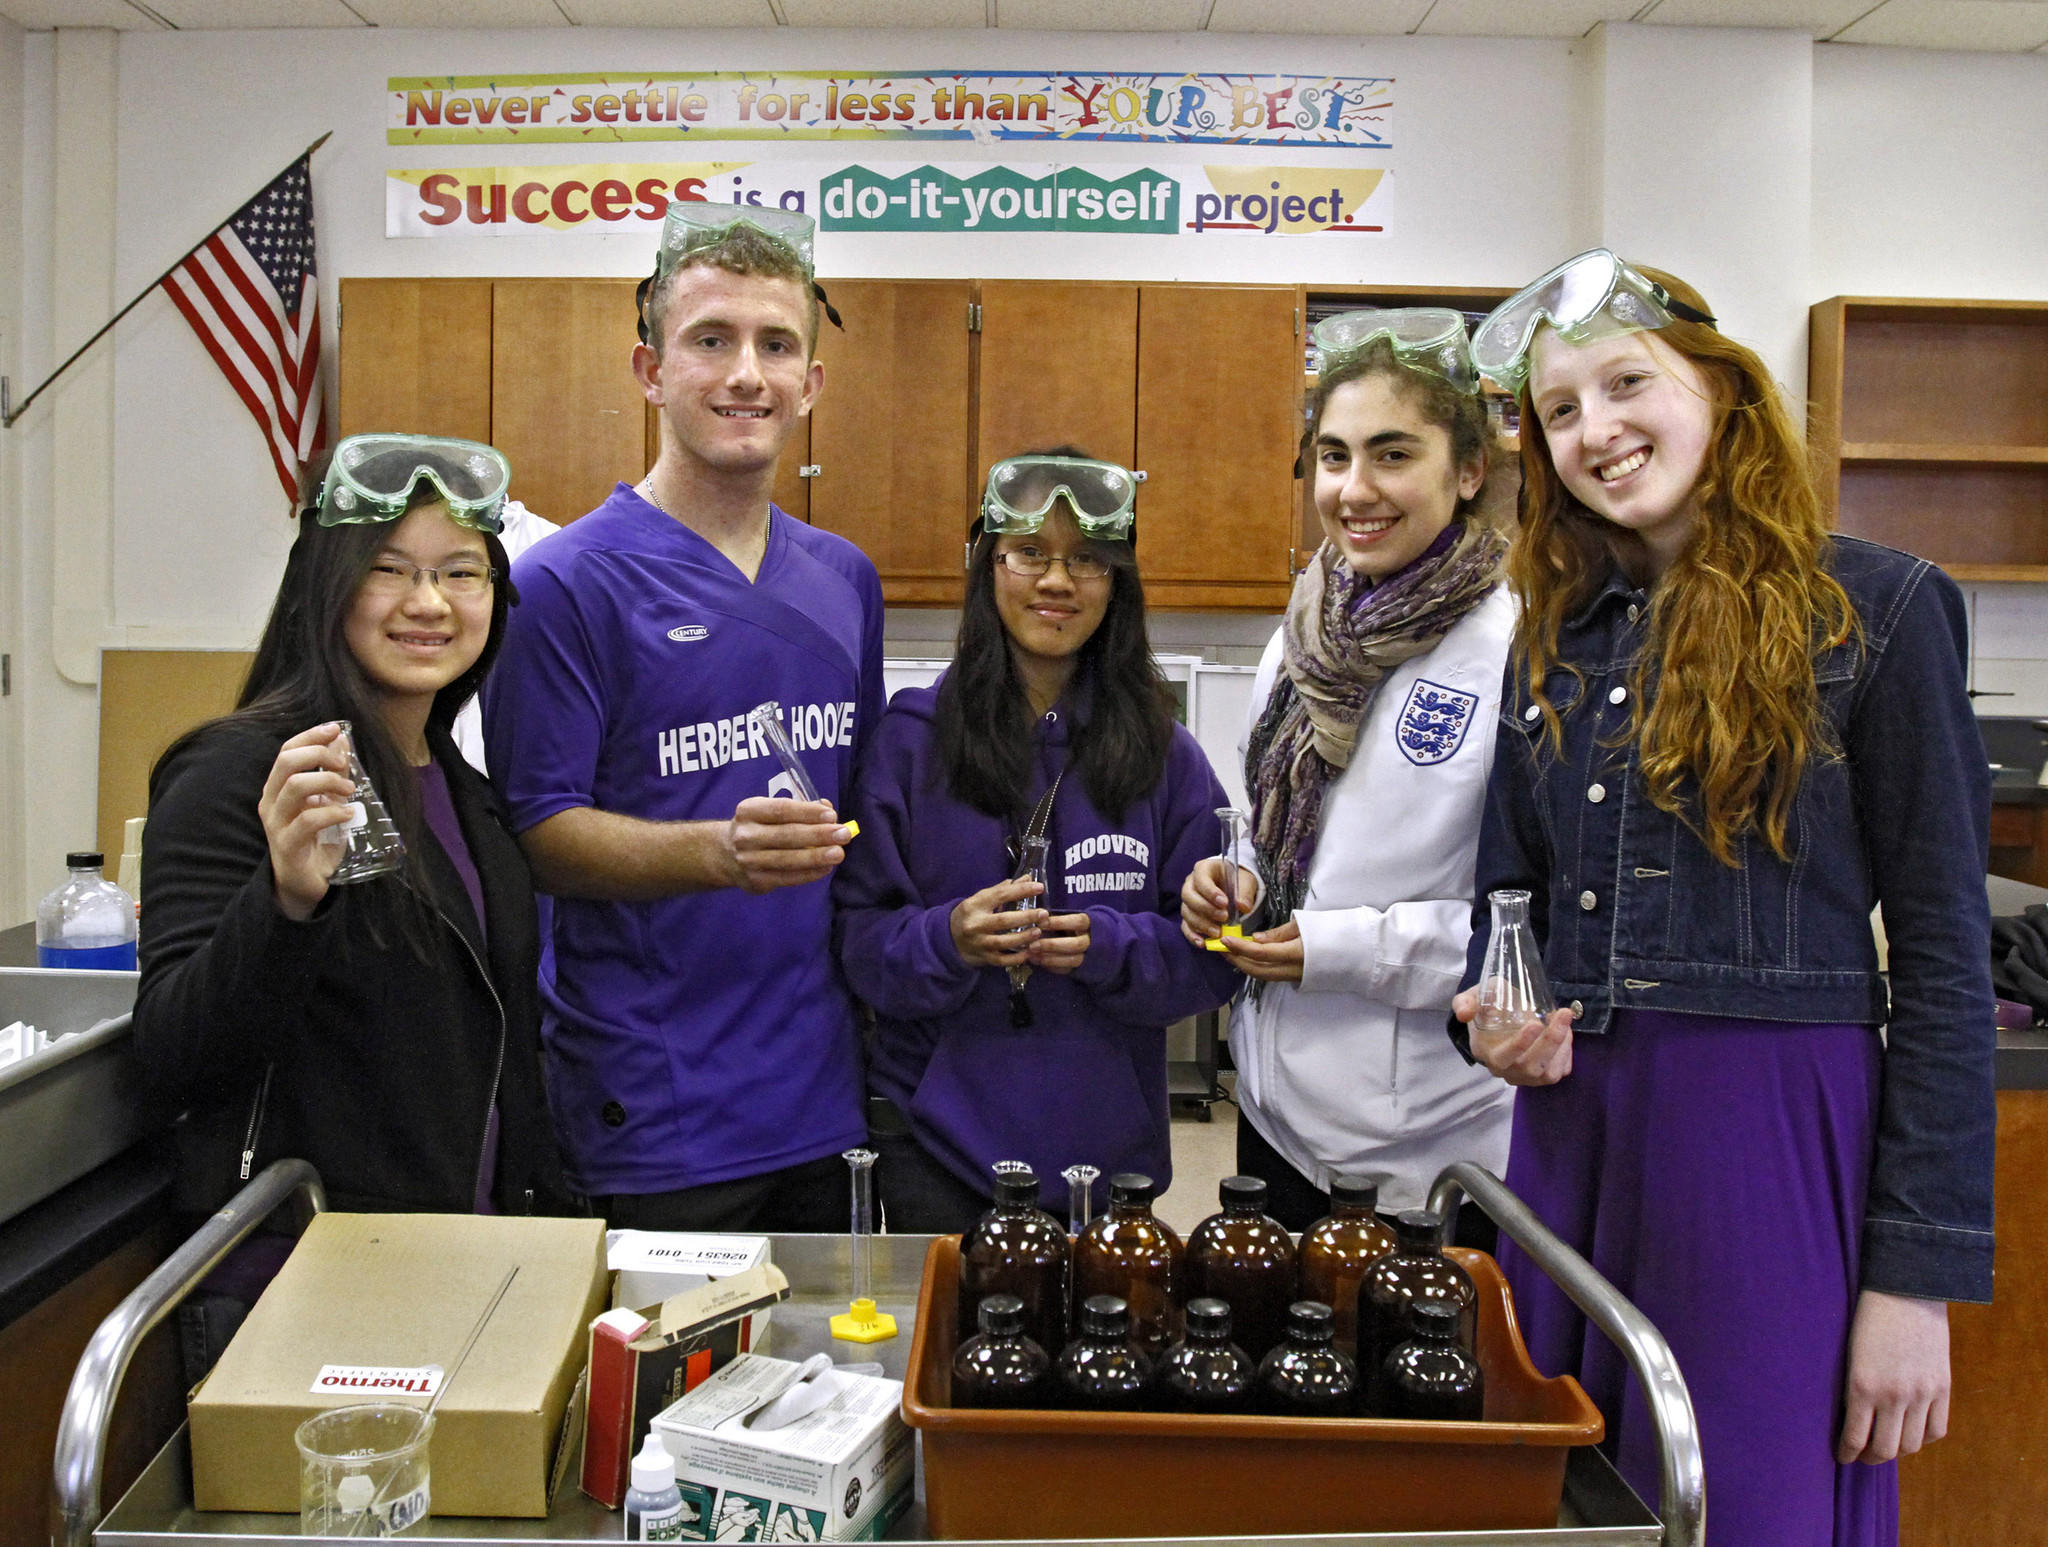 Hoover High School students, (l-r) junior Meagan Yuen, senior Jacob Deyell, juniors Charis Ramirez, and Daphne Bogosian and sophomore Kristina Laue, who will compete in a regional competition of the National Science Bowl tomorrow, are shown at the Glendale school on Friday, January 31, 2014. The regional battle of brains will determine if these students will compete in the national finals in Washington, D.C.